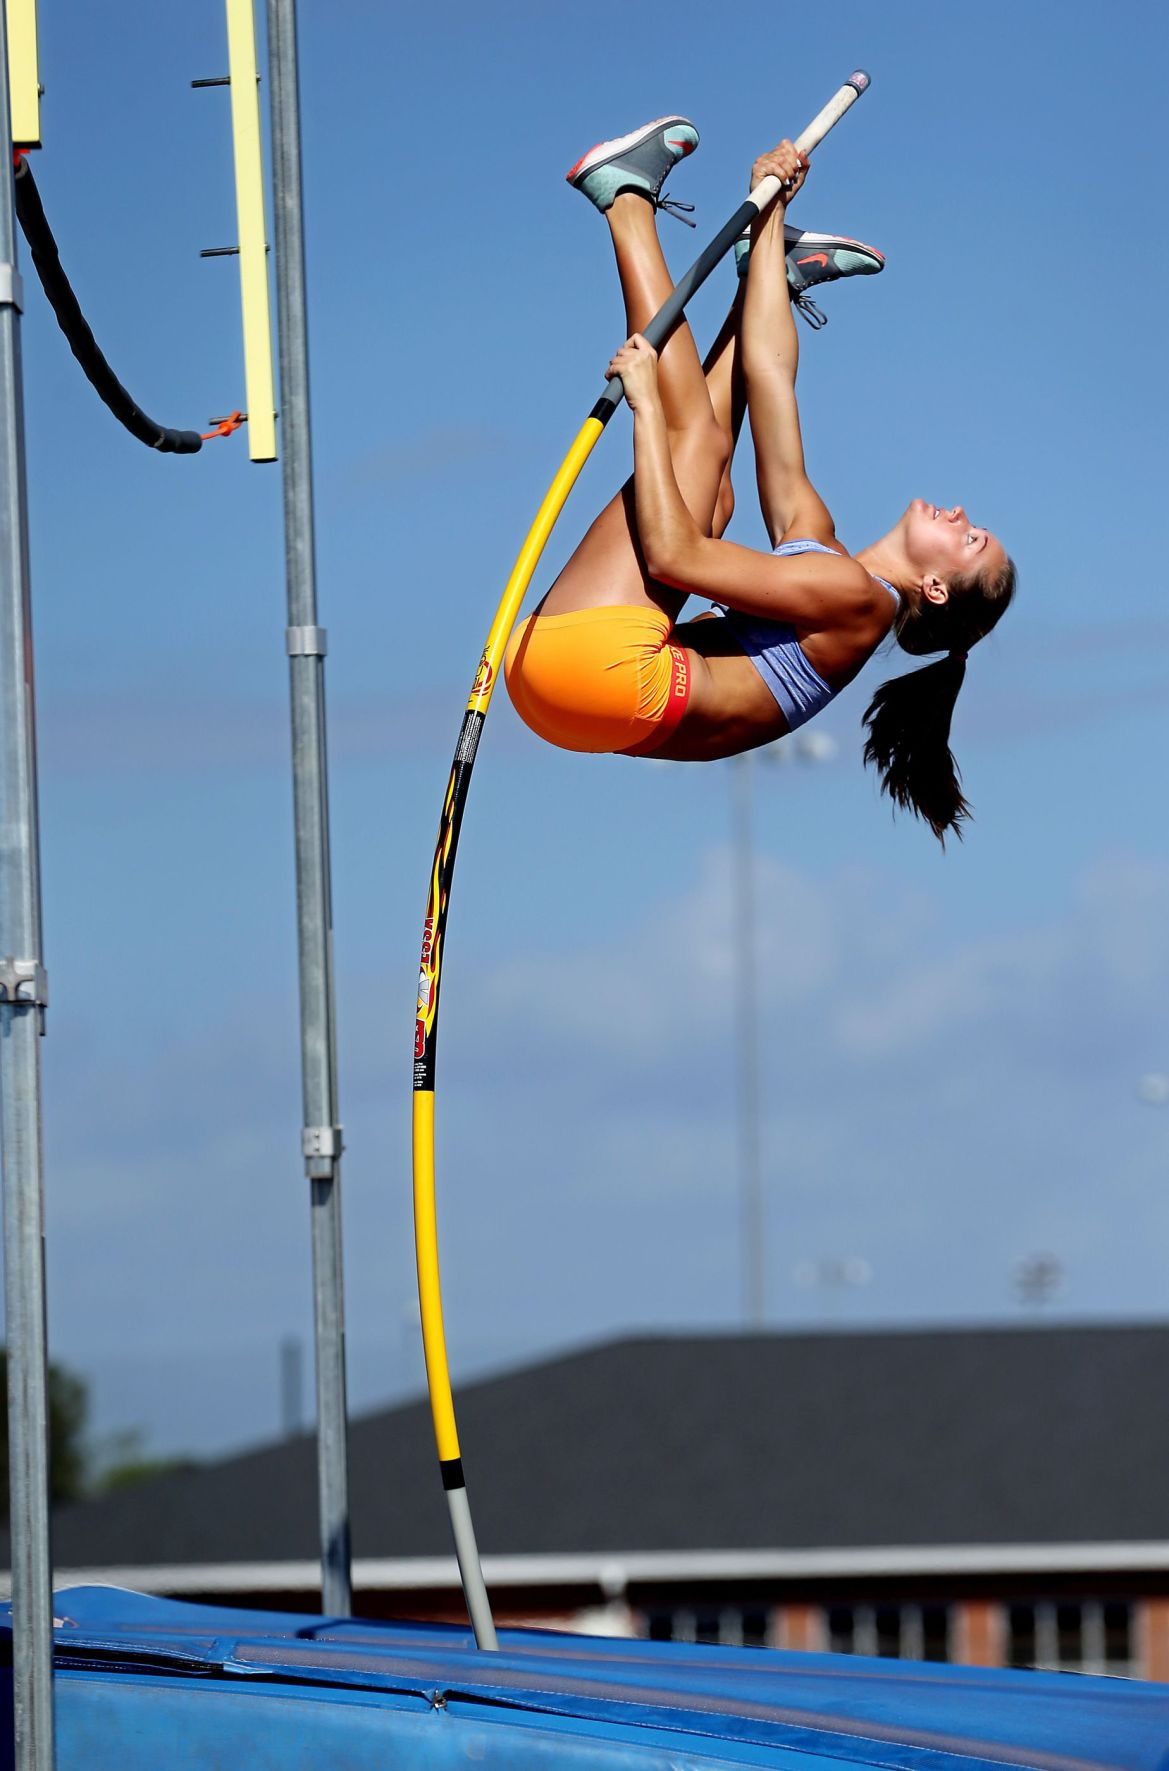 Hectic weekend ahead for James Island pole vaulter